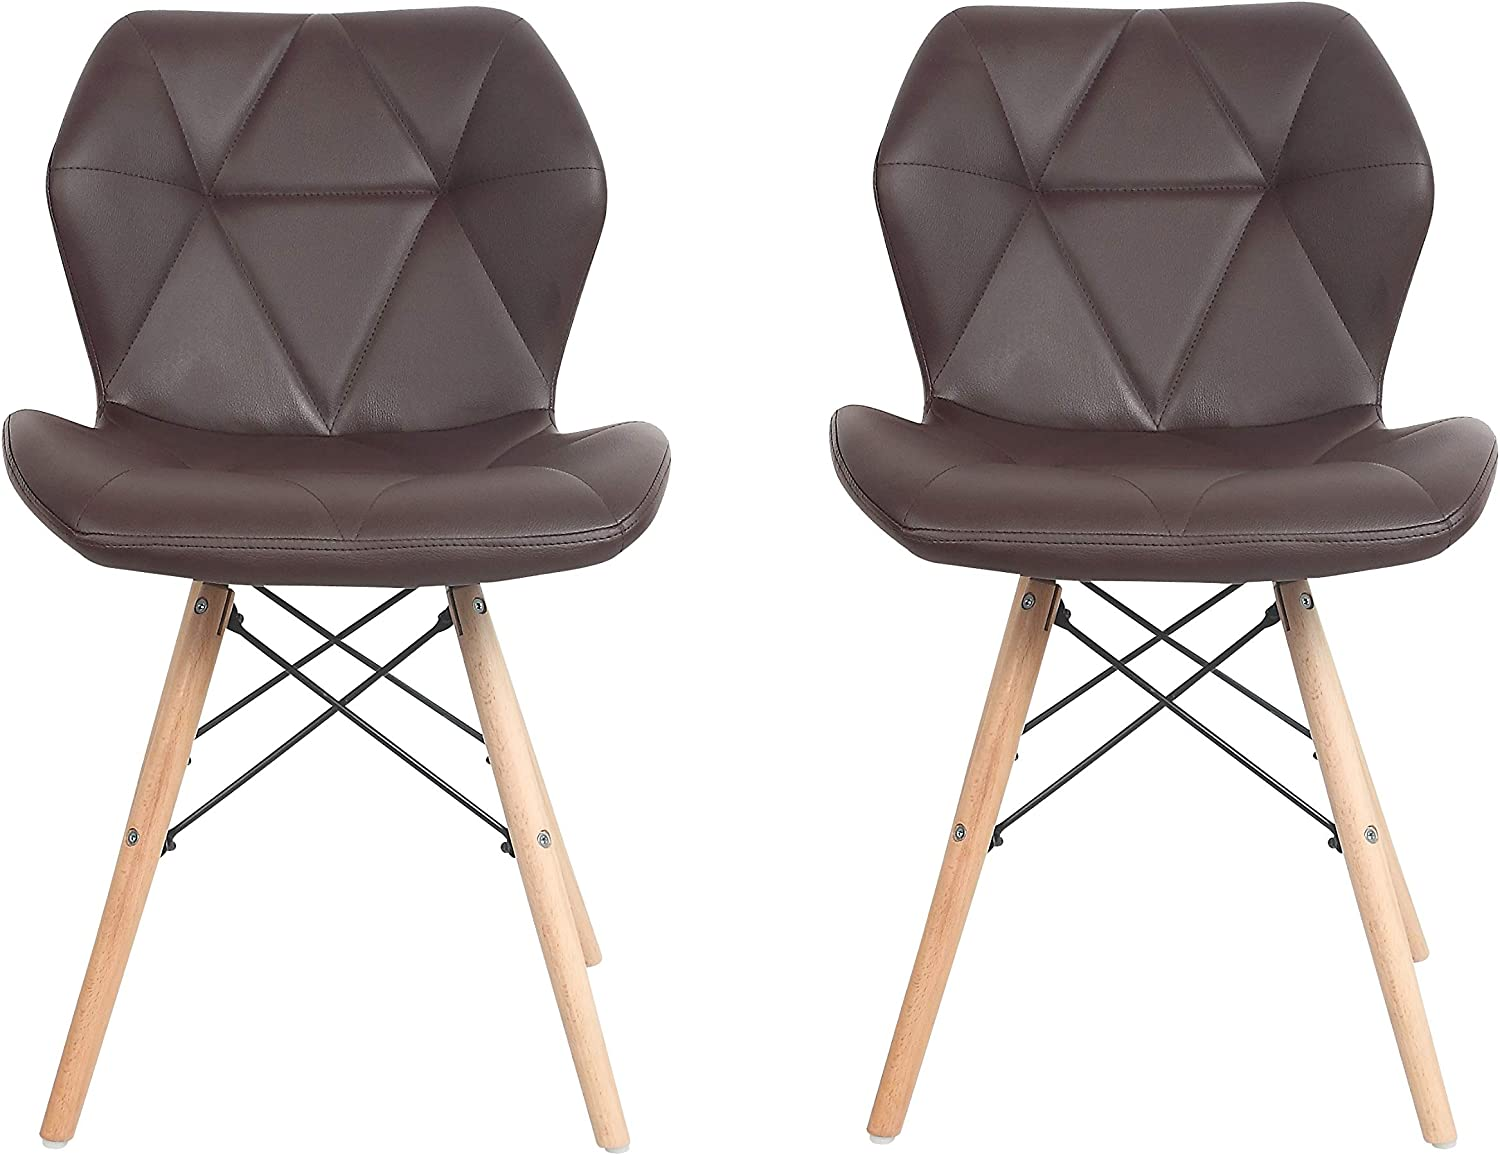 ViscoLogic Rever Eames Style High Back Leatherette Upholstered Eiffel Side Dining Chair Set with Natural Wooden Legs. (Set of 2, Brown)